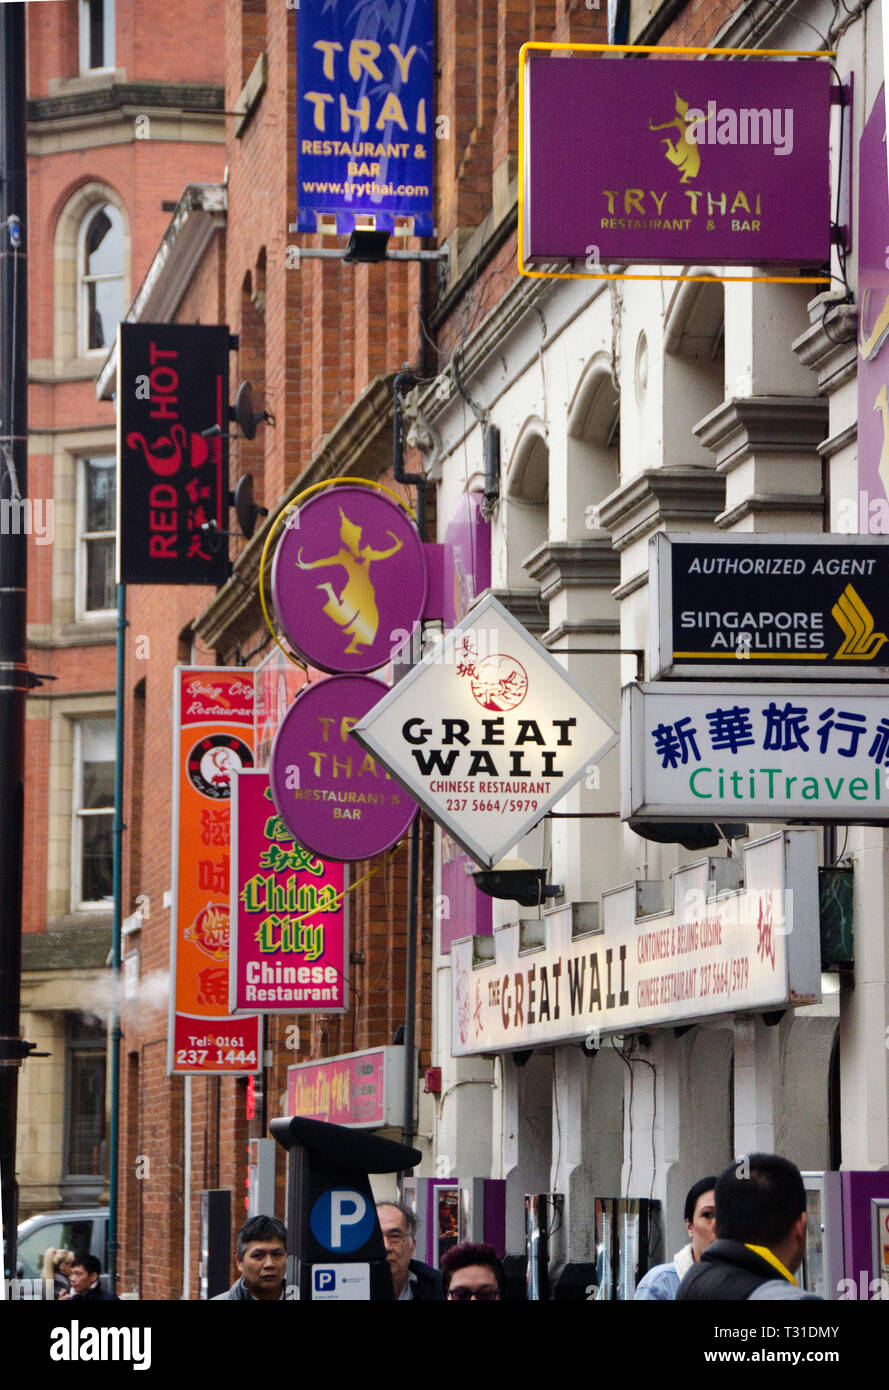 China Town area in Manchester City Centre, England, UK. Stock Photo